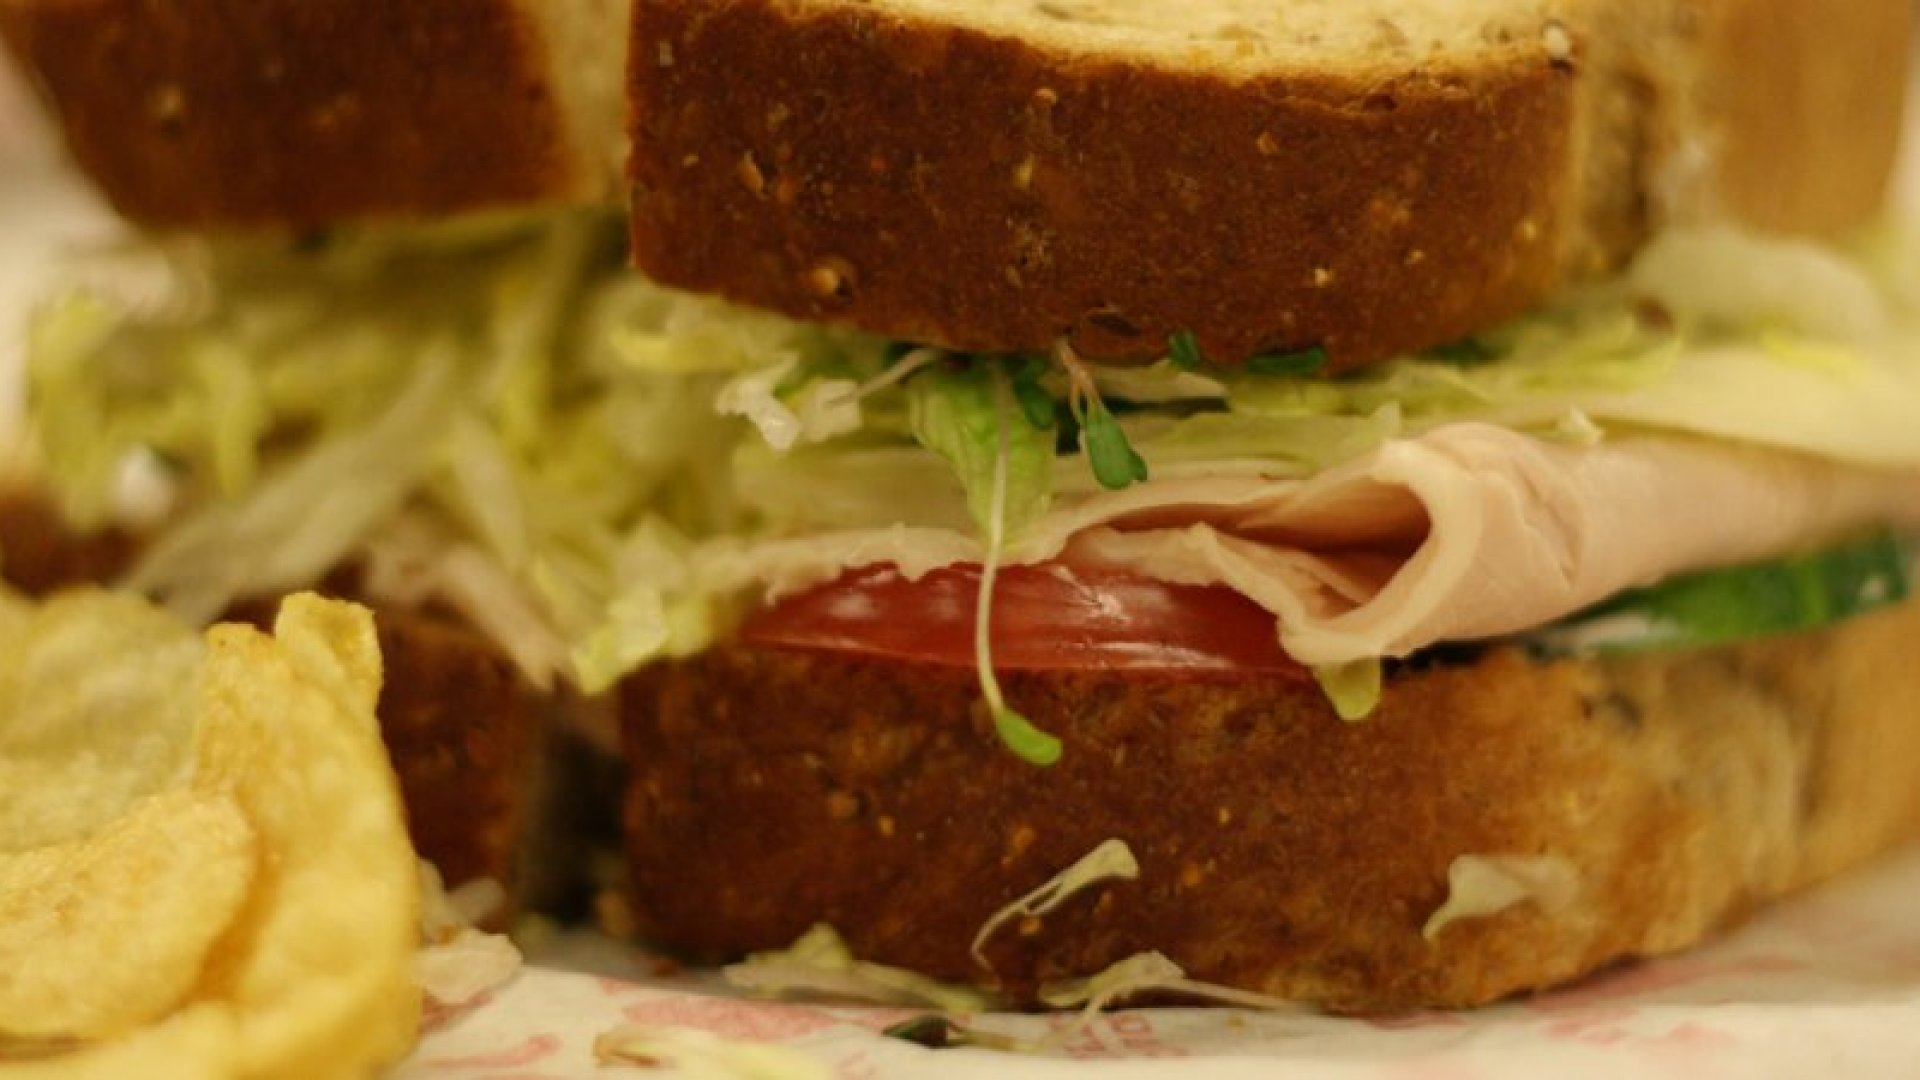 Washington, DC -- Dec. 15, 2011. The Beach Club sandwich on seven grain bread from Jimmy John's in Washington D.C., one of the popular sandwich chain's more exciting menu items. (Photo by Alex Baldinger/The Washington Post via Getty Images)